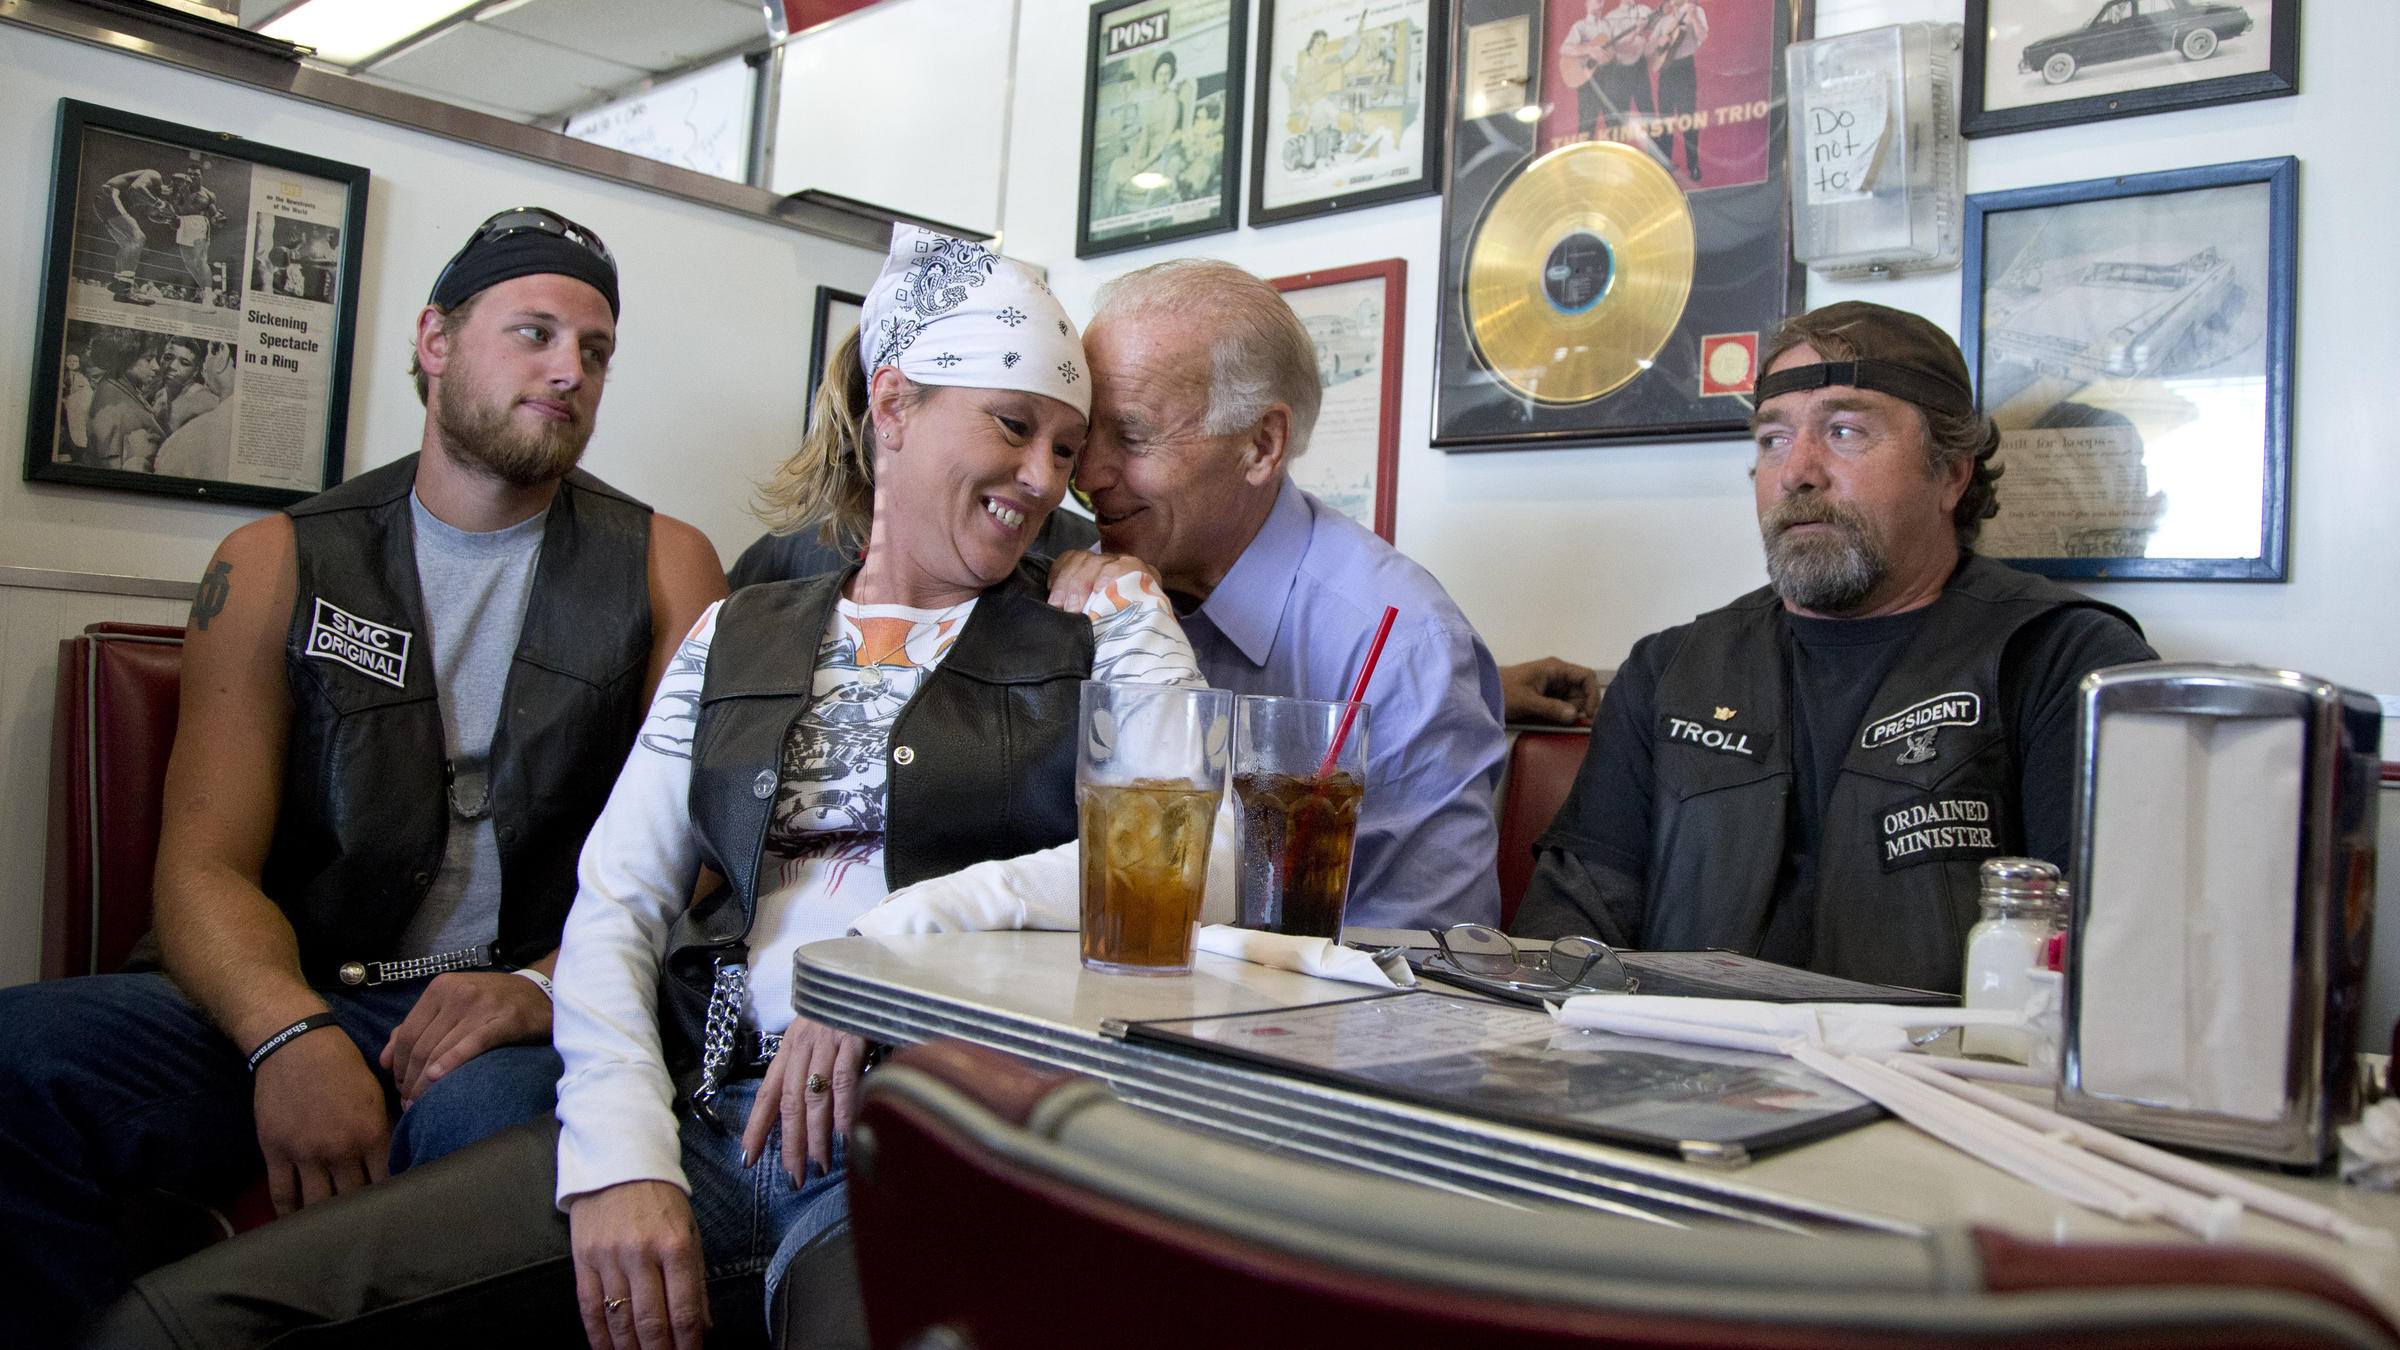 5 Things To Know About Joe Biden Iowa Public Radio